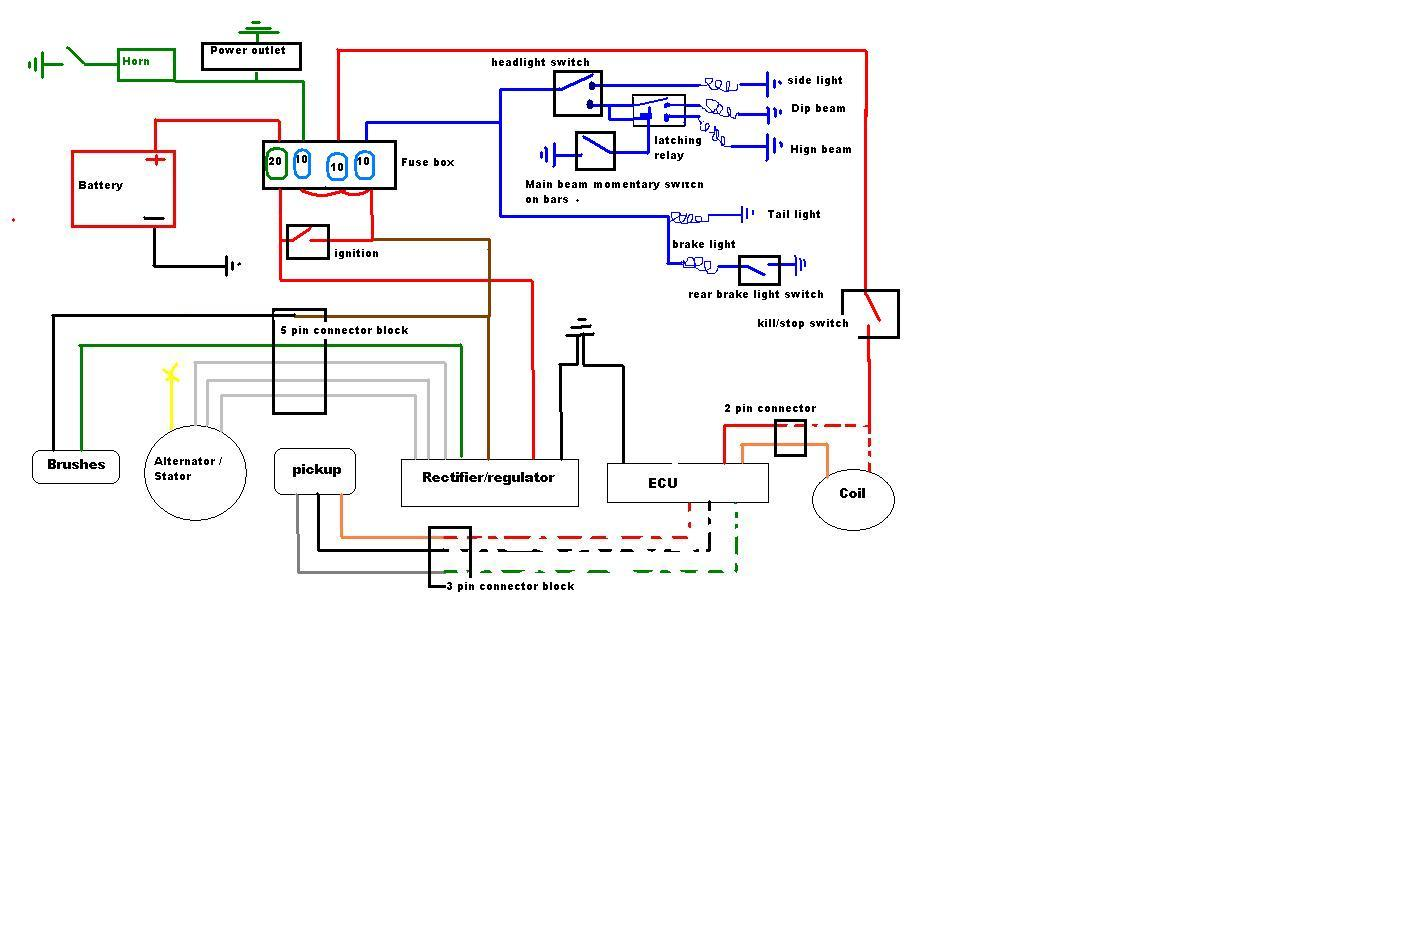 Fzx700 Wiring Diagram - Wiring Diagram G11 on